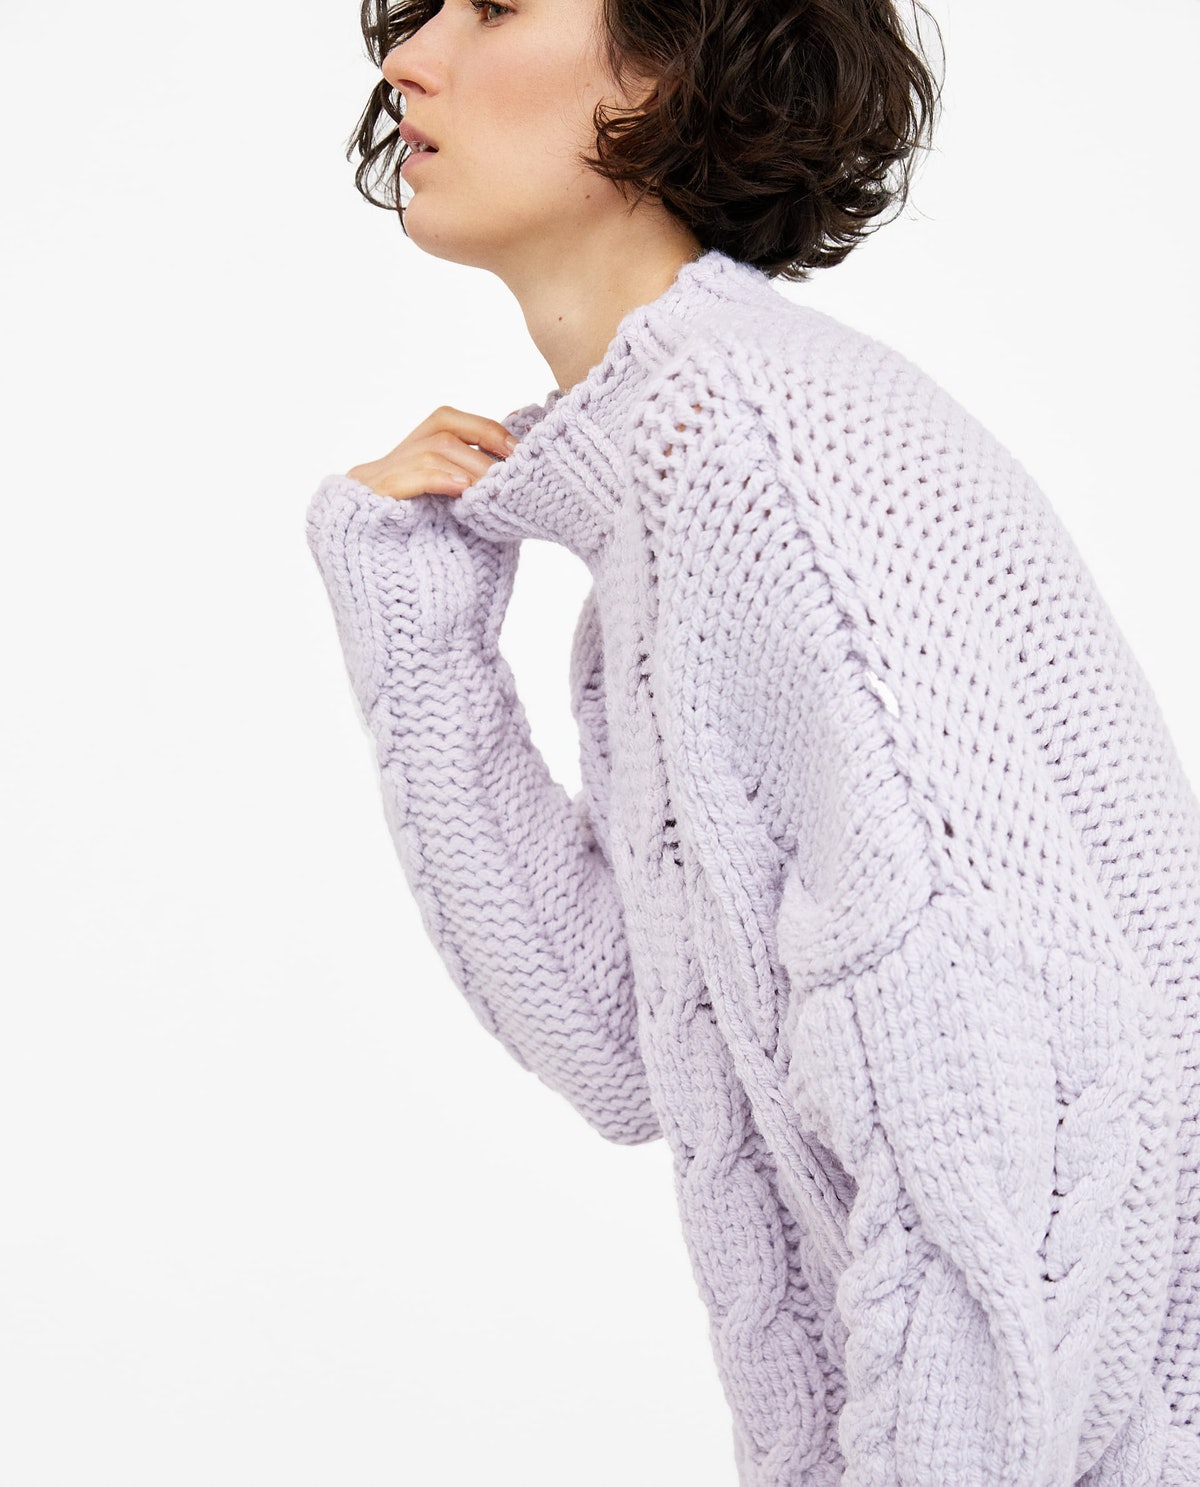 Cable-Knit Sweater, $49, Zara